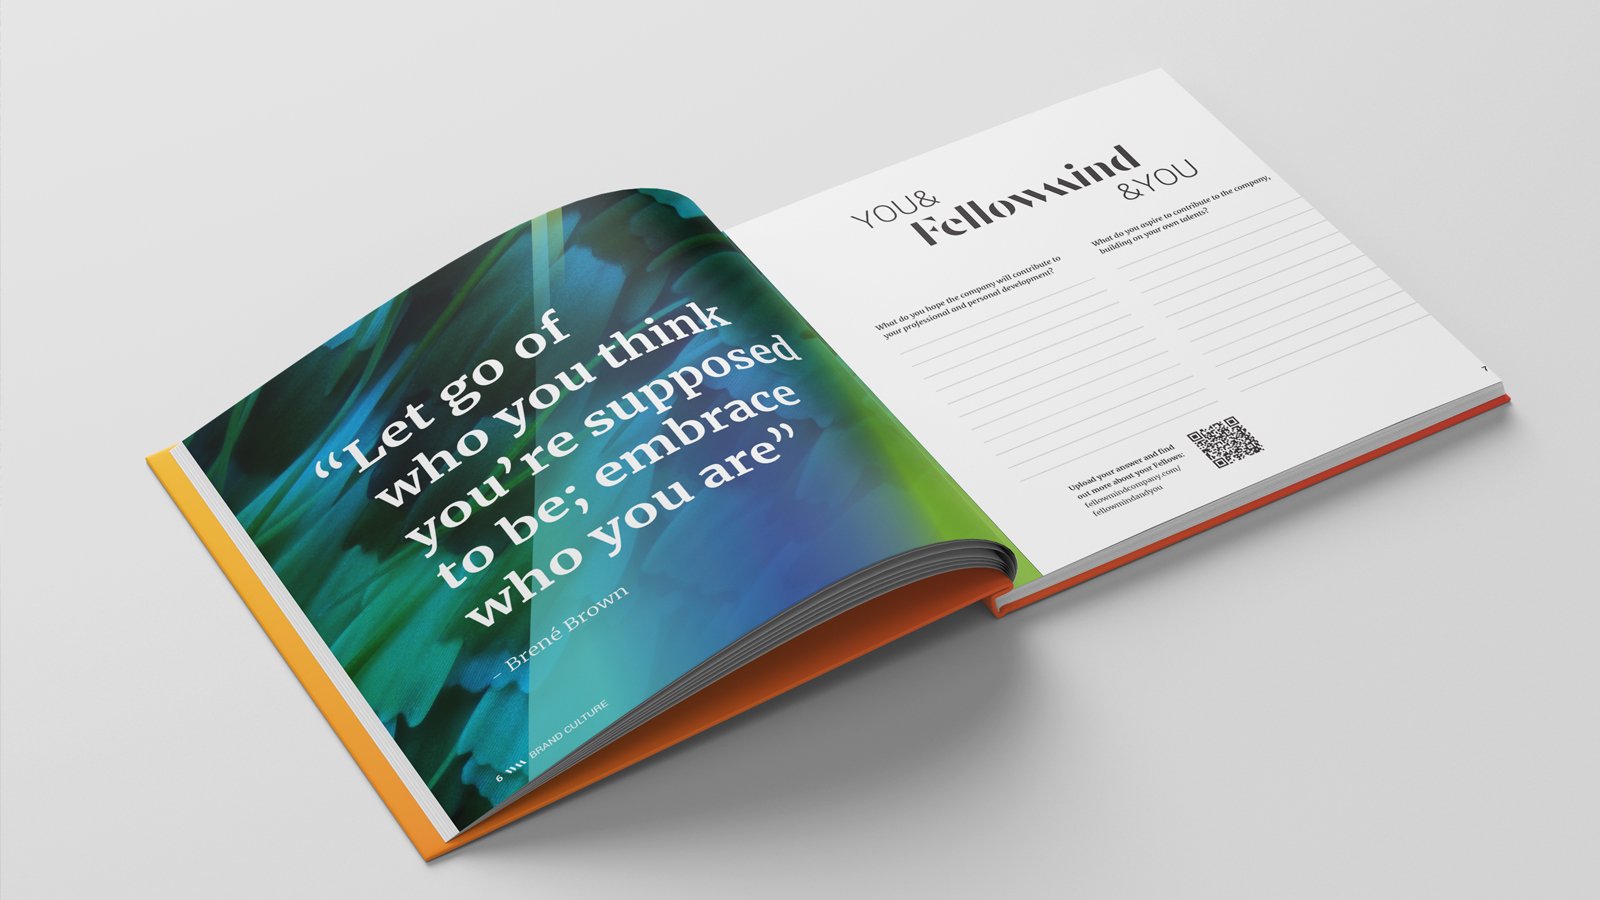 Merkpositionering & Culture Book Fellowmind